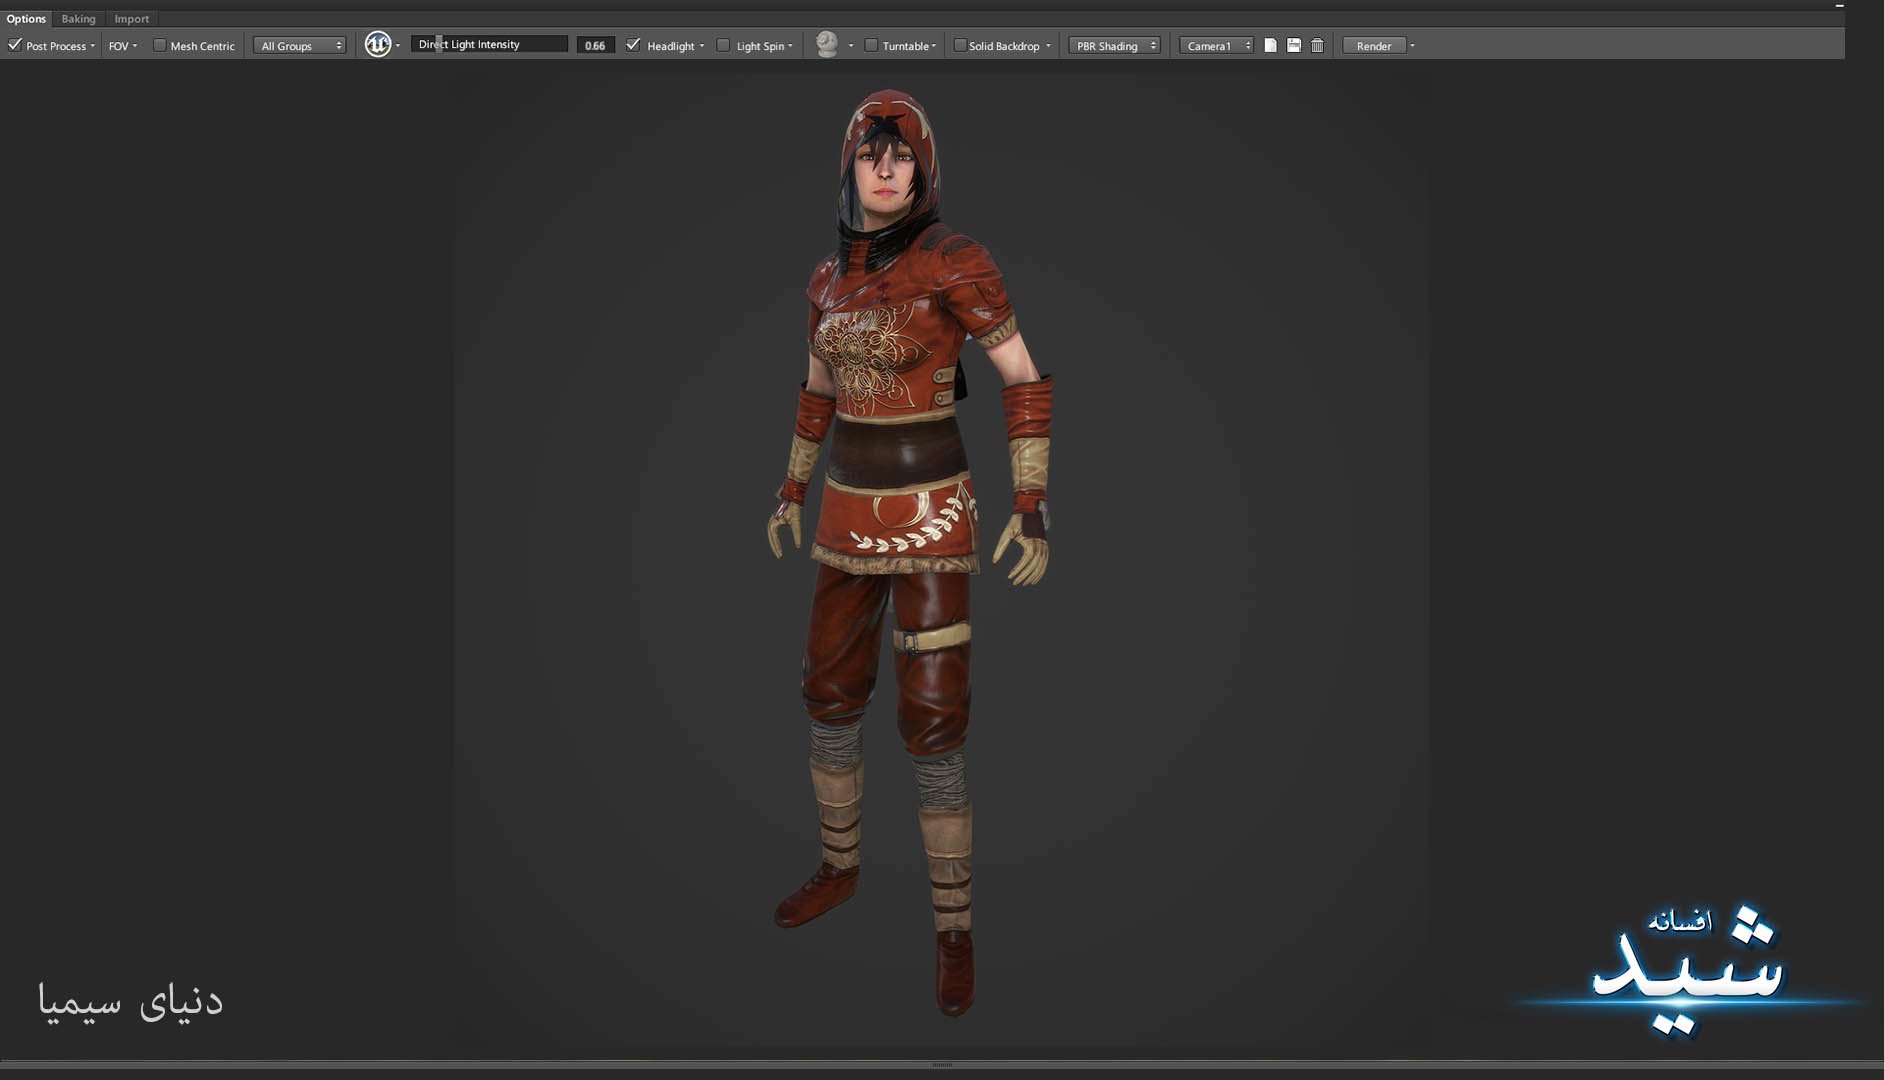 Legend of the light_Archer Character Texturing_Hadi Beheshti CG Artist Game Designer-4